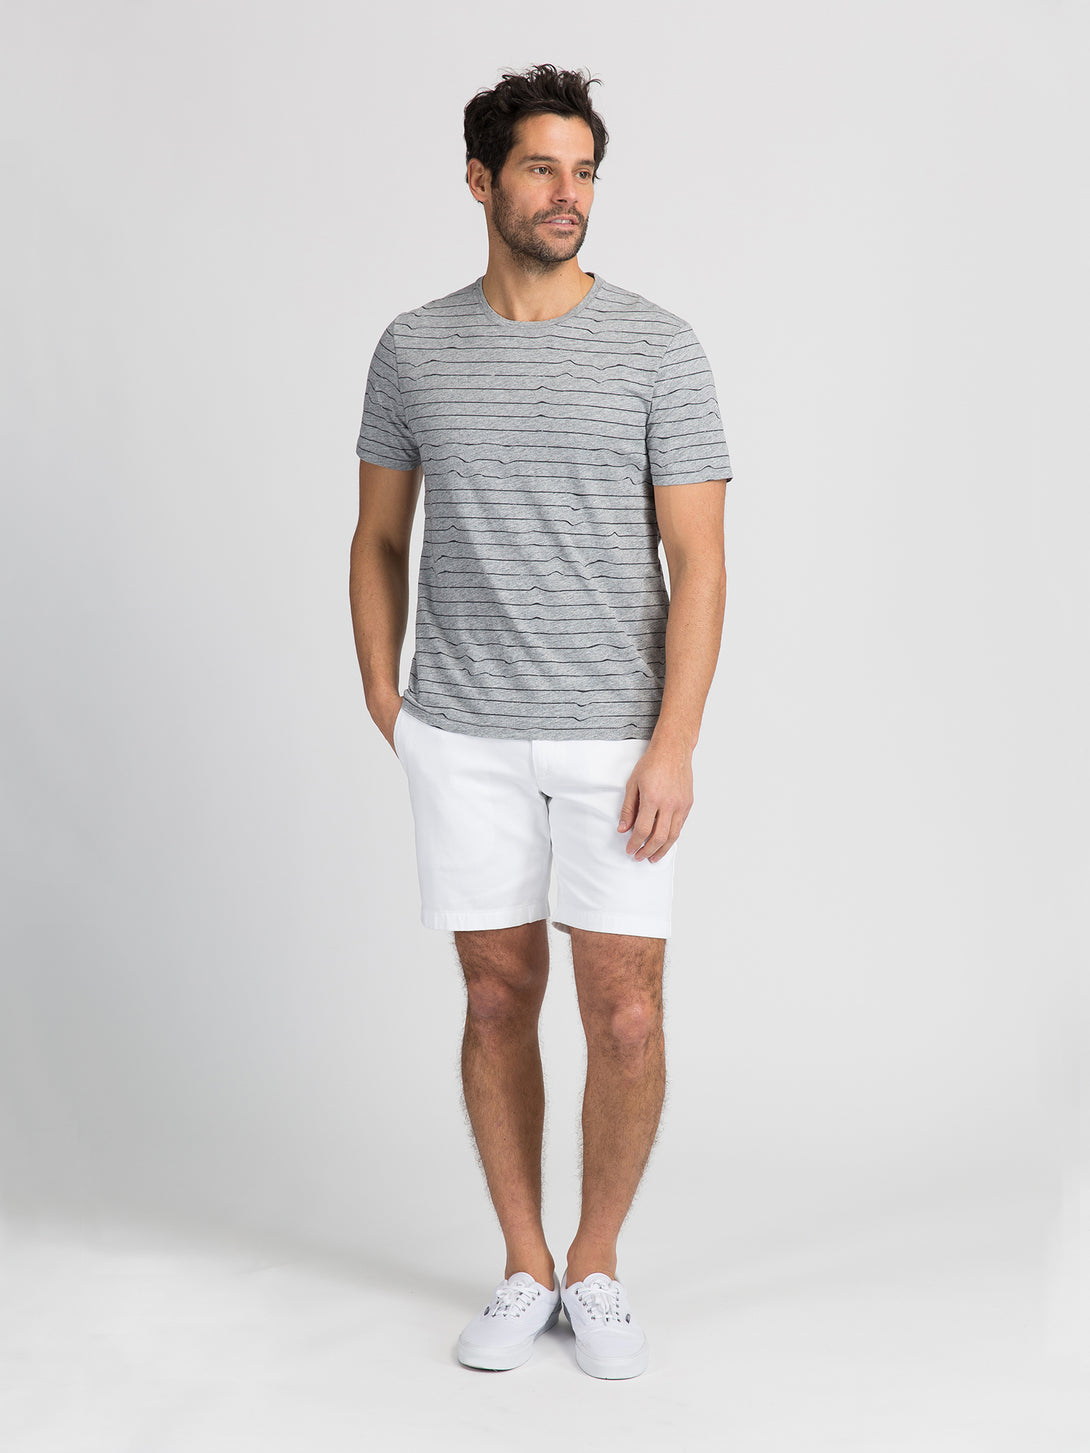 ons garage men's shorts WHITE